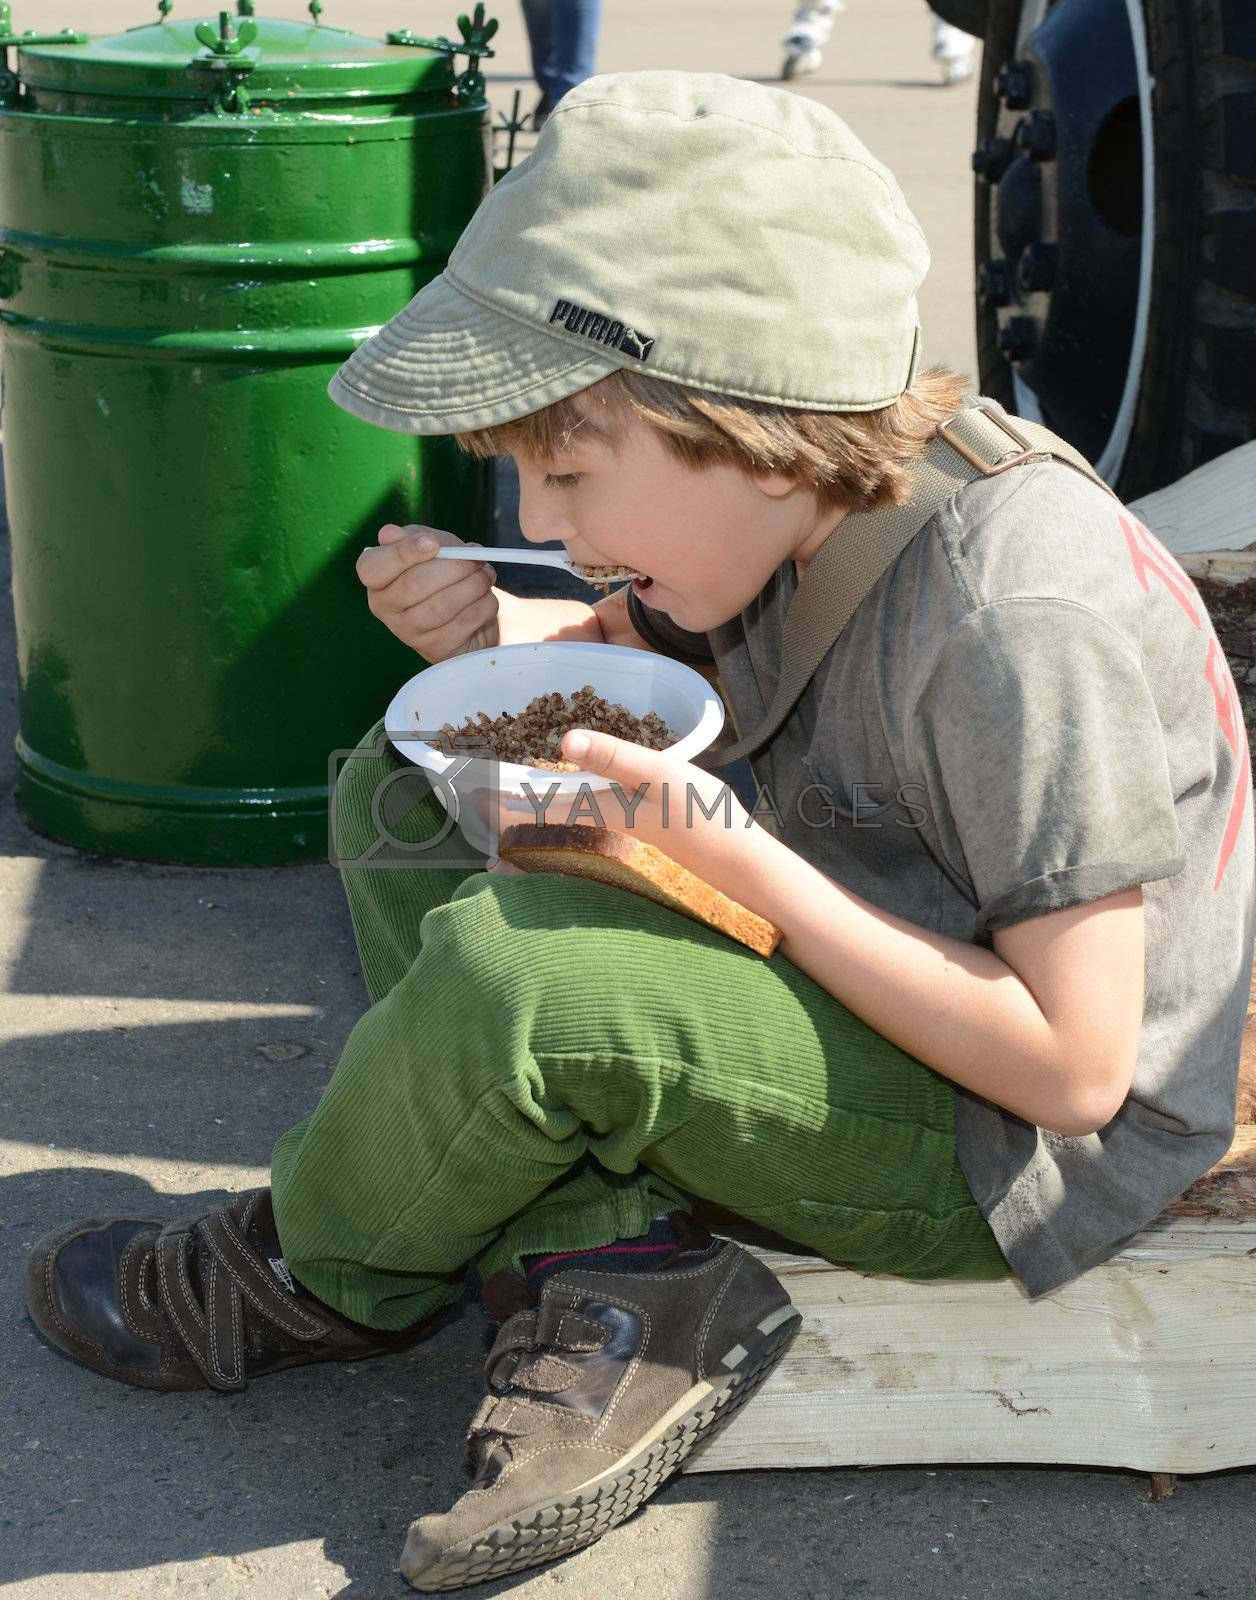 Moscow, Russia - May 9, 2013: Boy eating porridge soldier in the military field kitchen during festivities devoted to 68th anniversary of Victory Day